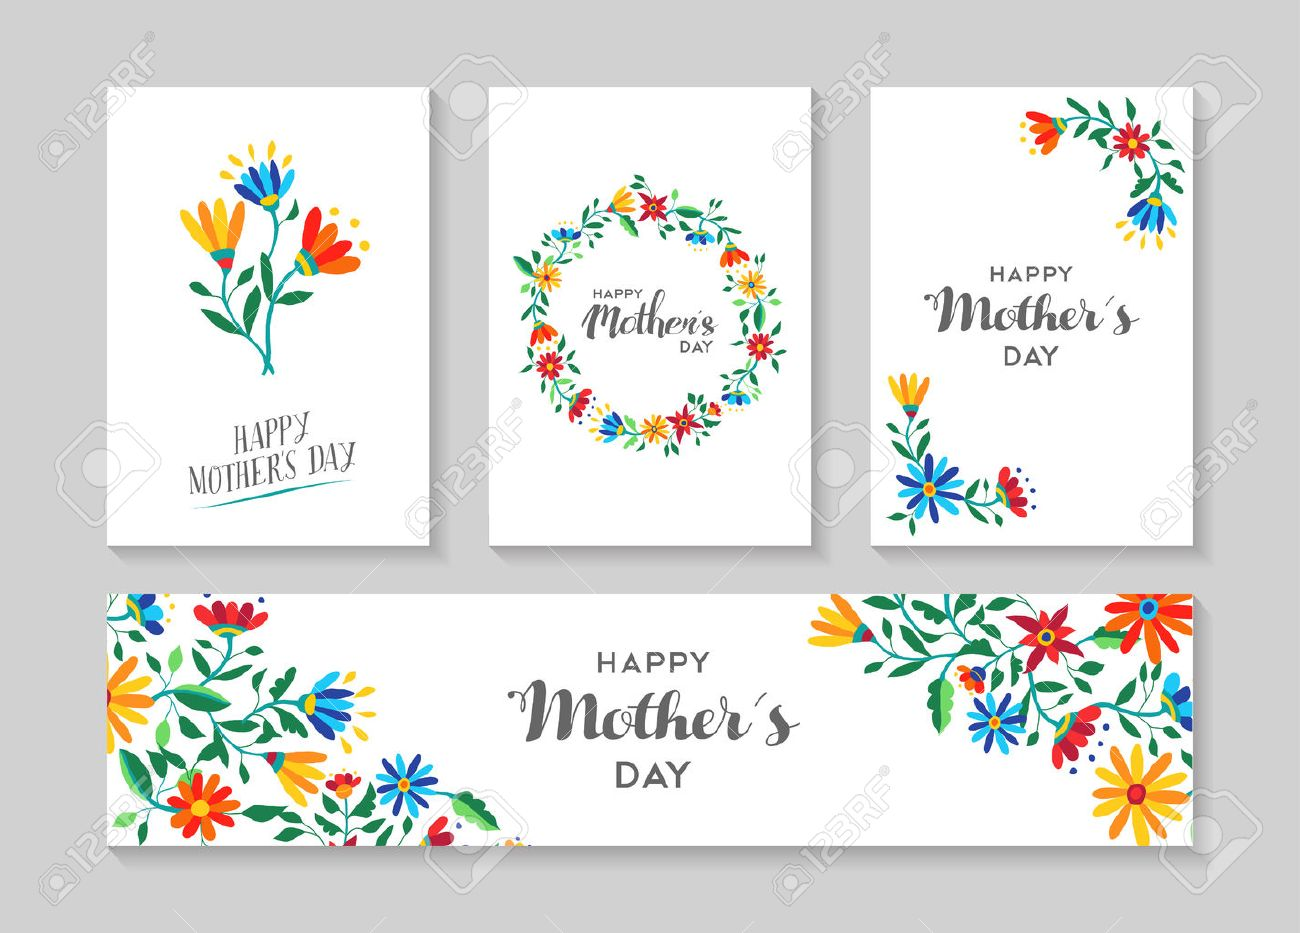 Set of retro flower cards template with spring time illustrations for special mothers day family event. EPS10 vector. - 55087035